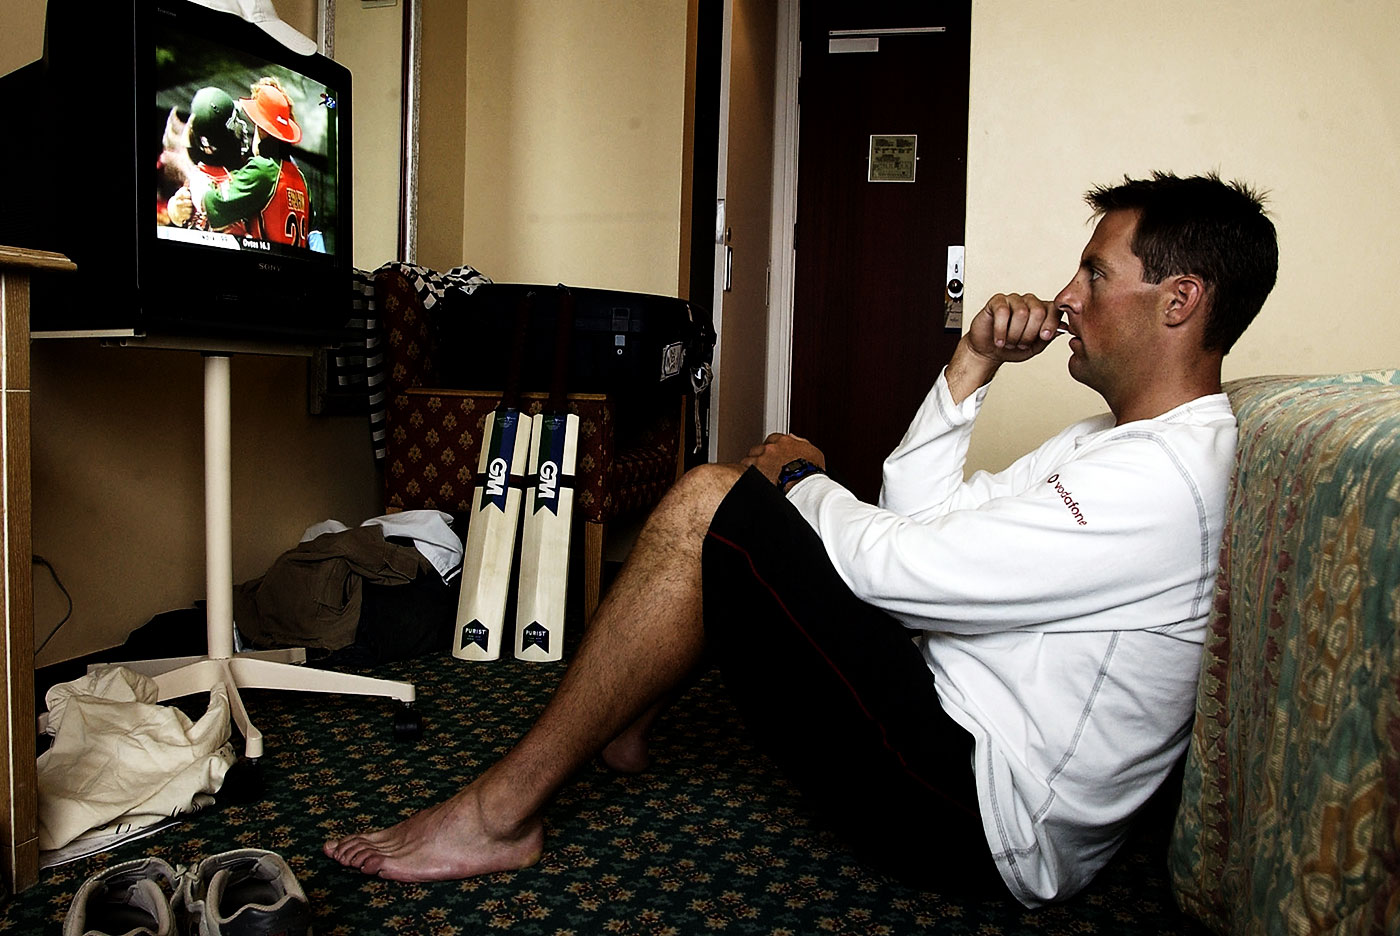 Marcus Trescothick watches a match on TV in his hotel room in Port Elizabeth during the 2003 World Cup